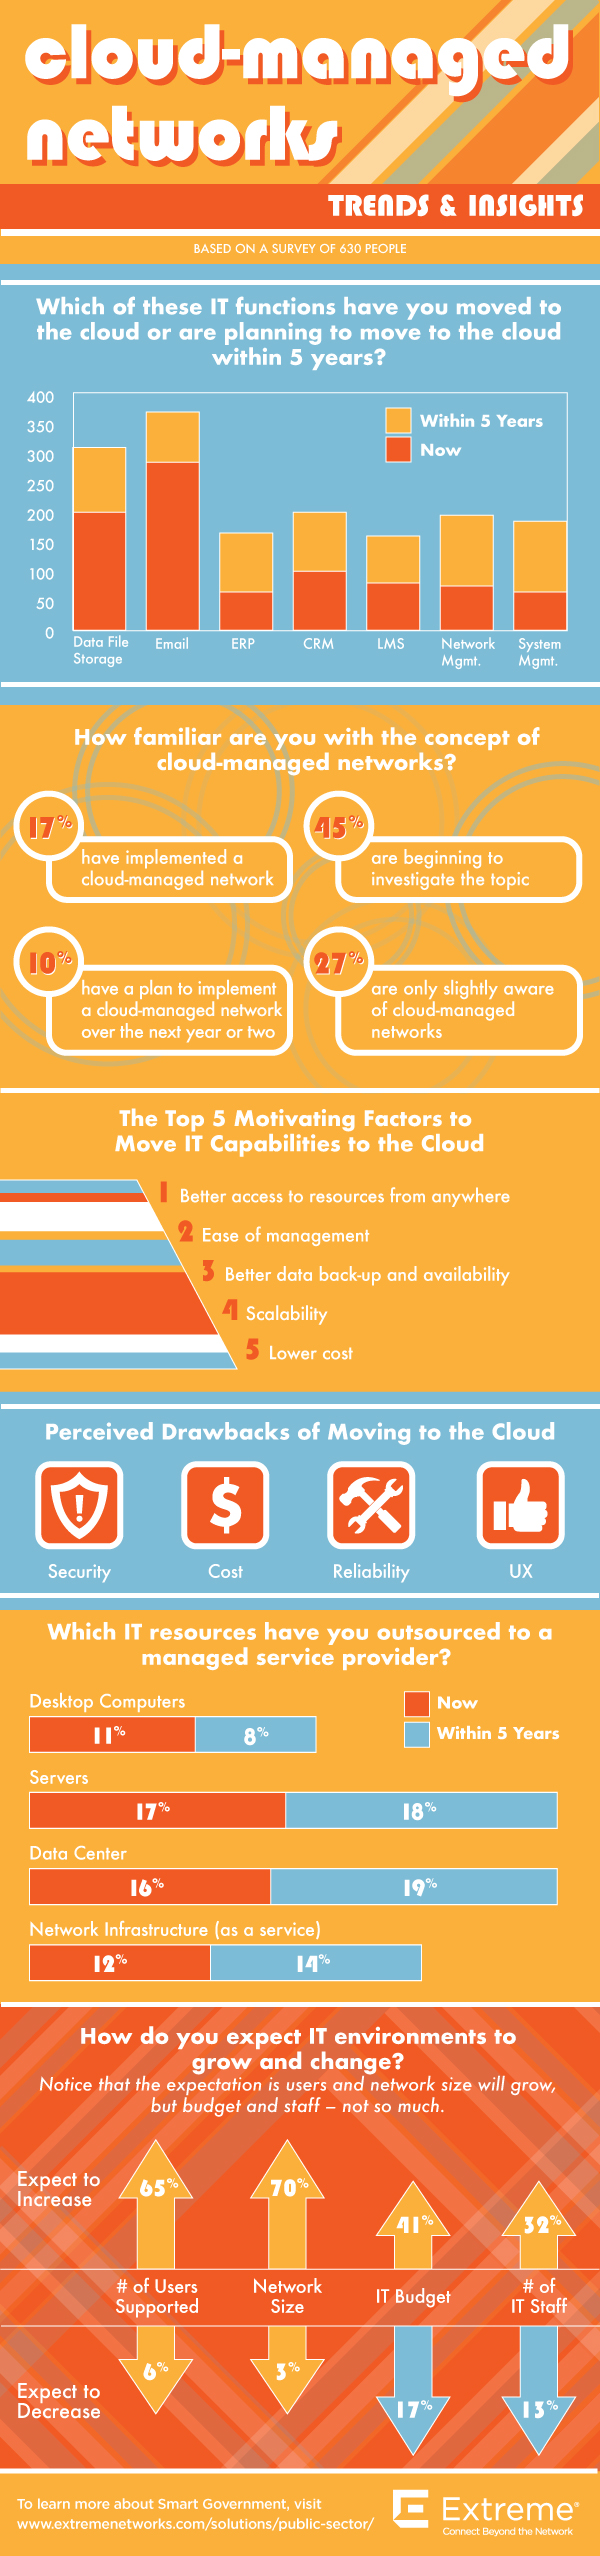 Extreme Networks Infographic